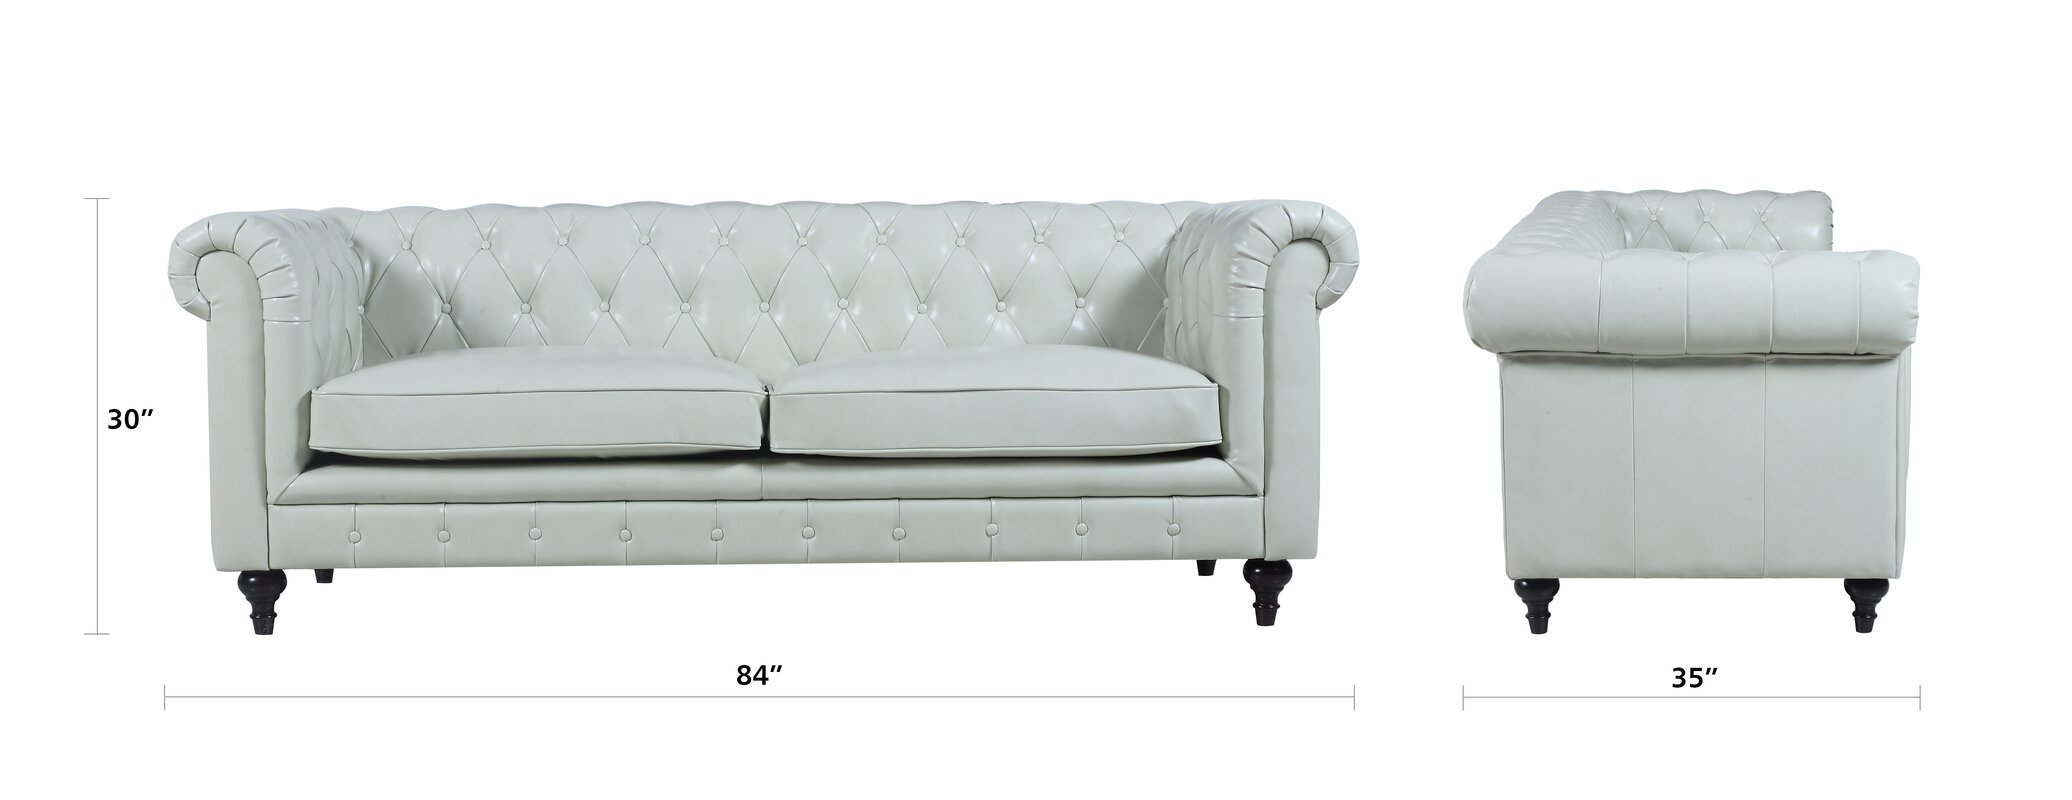 Tufted Leather Chesterfield Sofa Reviews Joss Main ~ Tufted Leather Sofa Bed